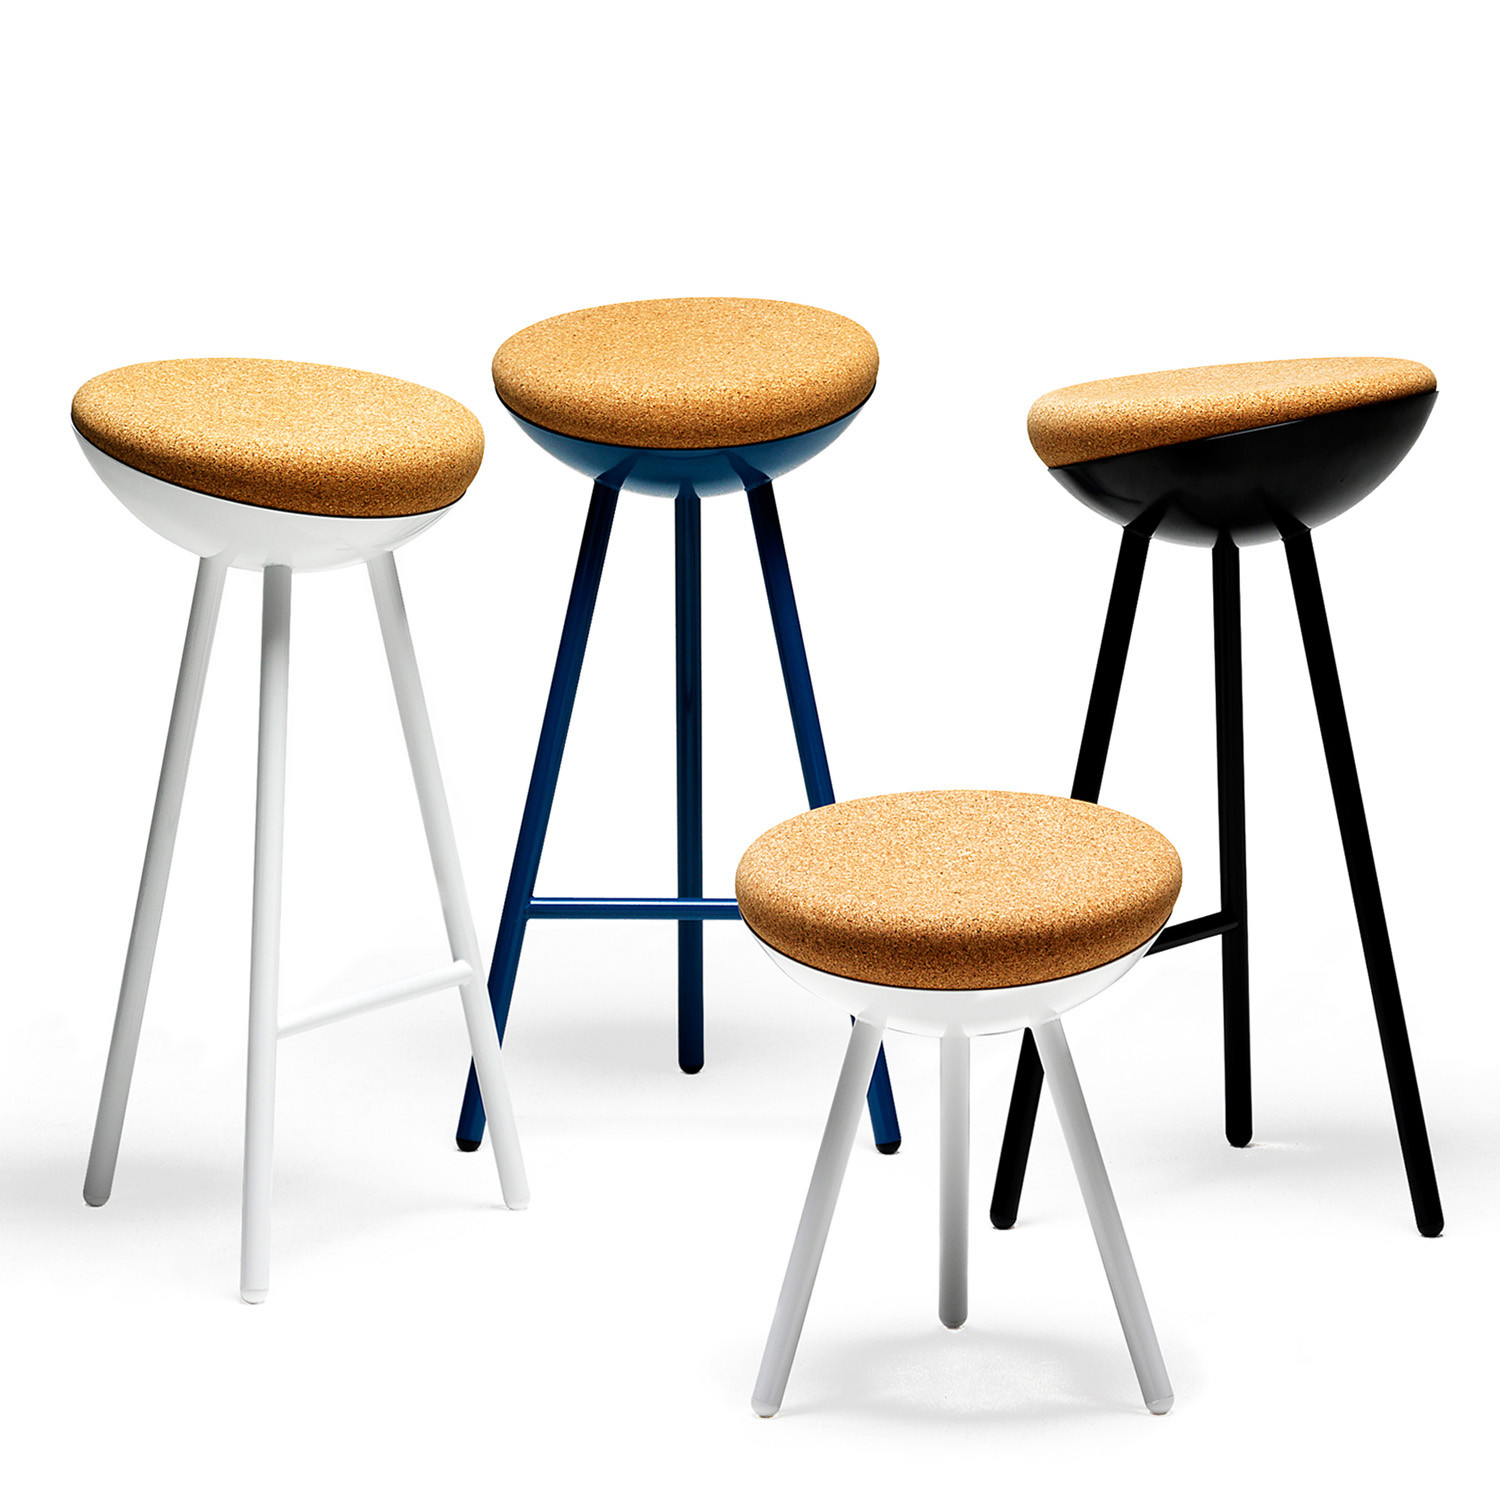 Boet Low Stool